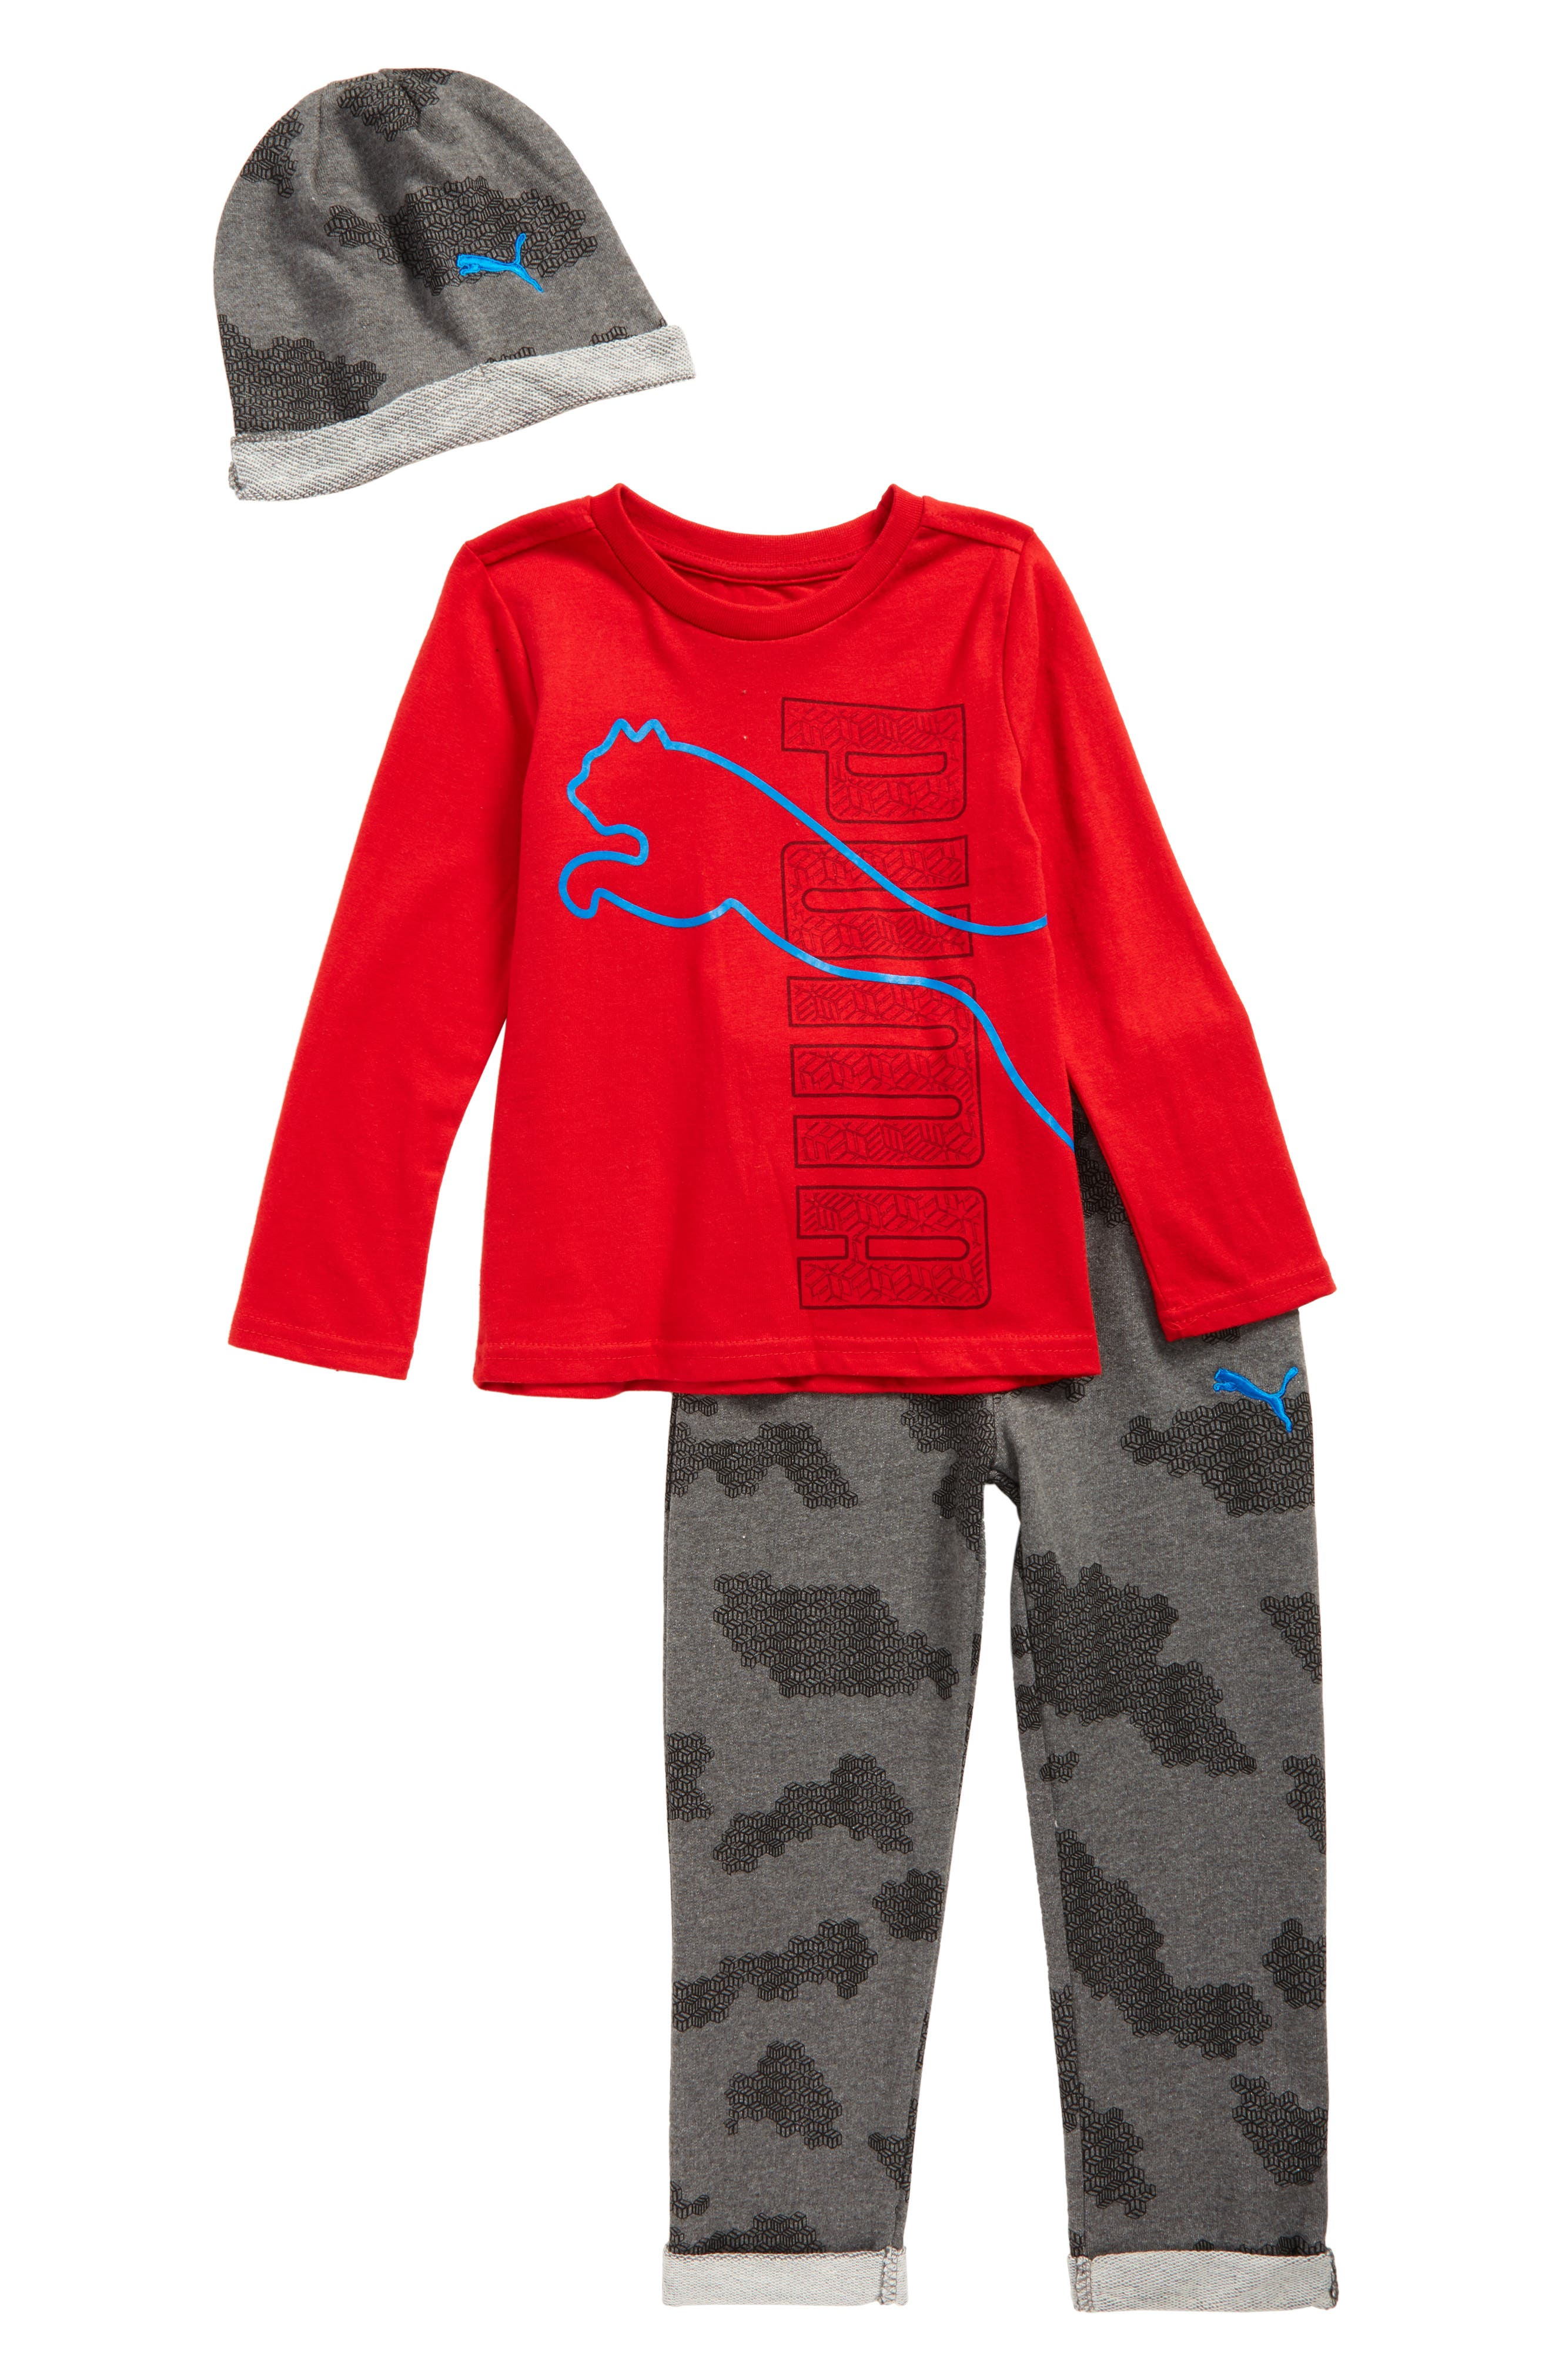 PUMA Hat, T-Shirt & Sweatpants Set (Toddler Boys & Little Boys)